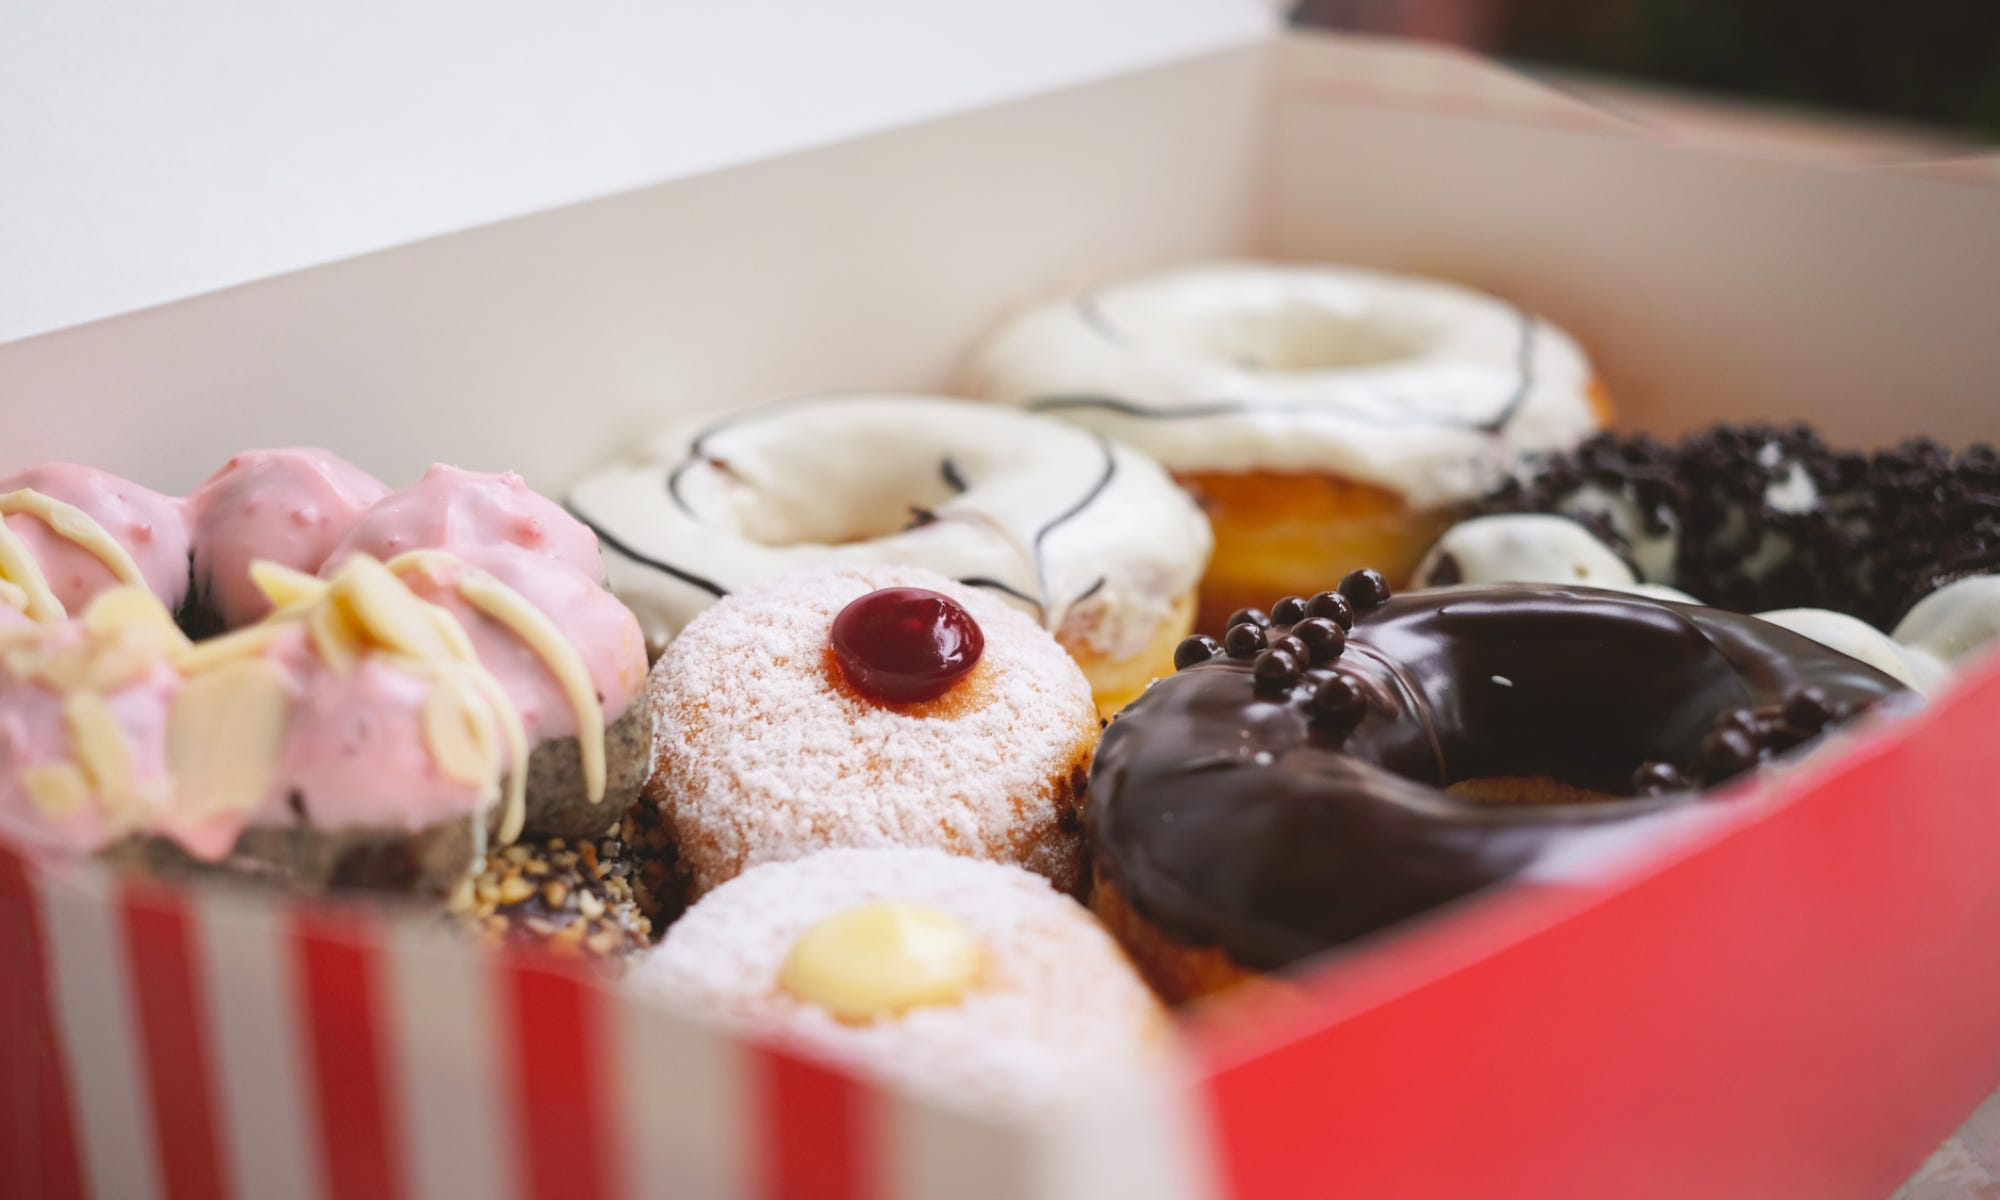 Why your local doughnut shop uses a pink box   USA Today